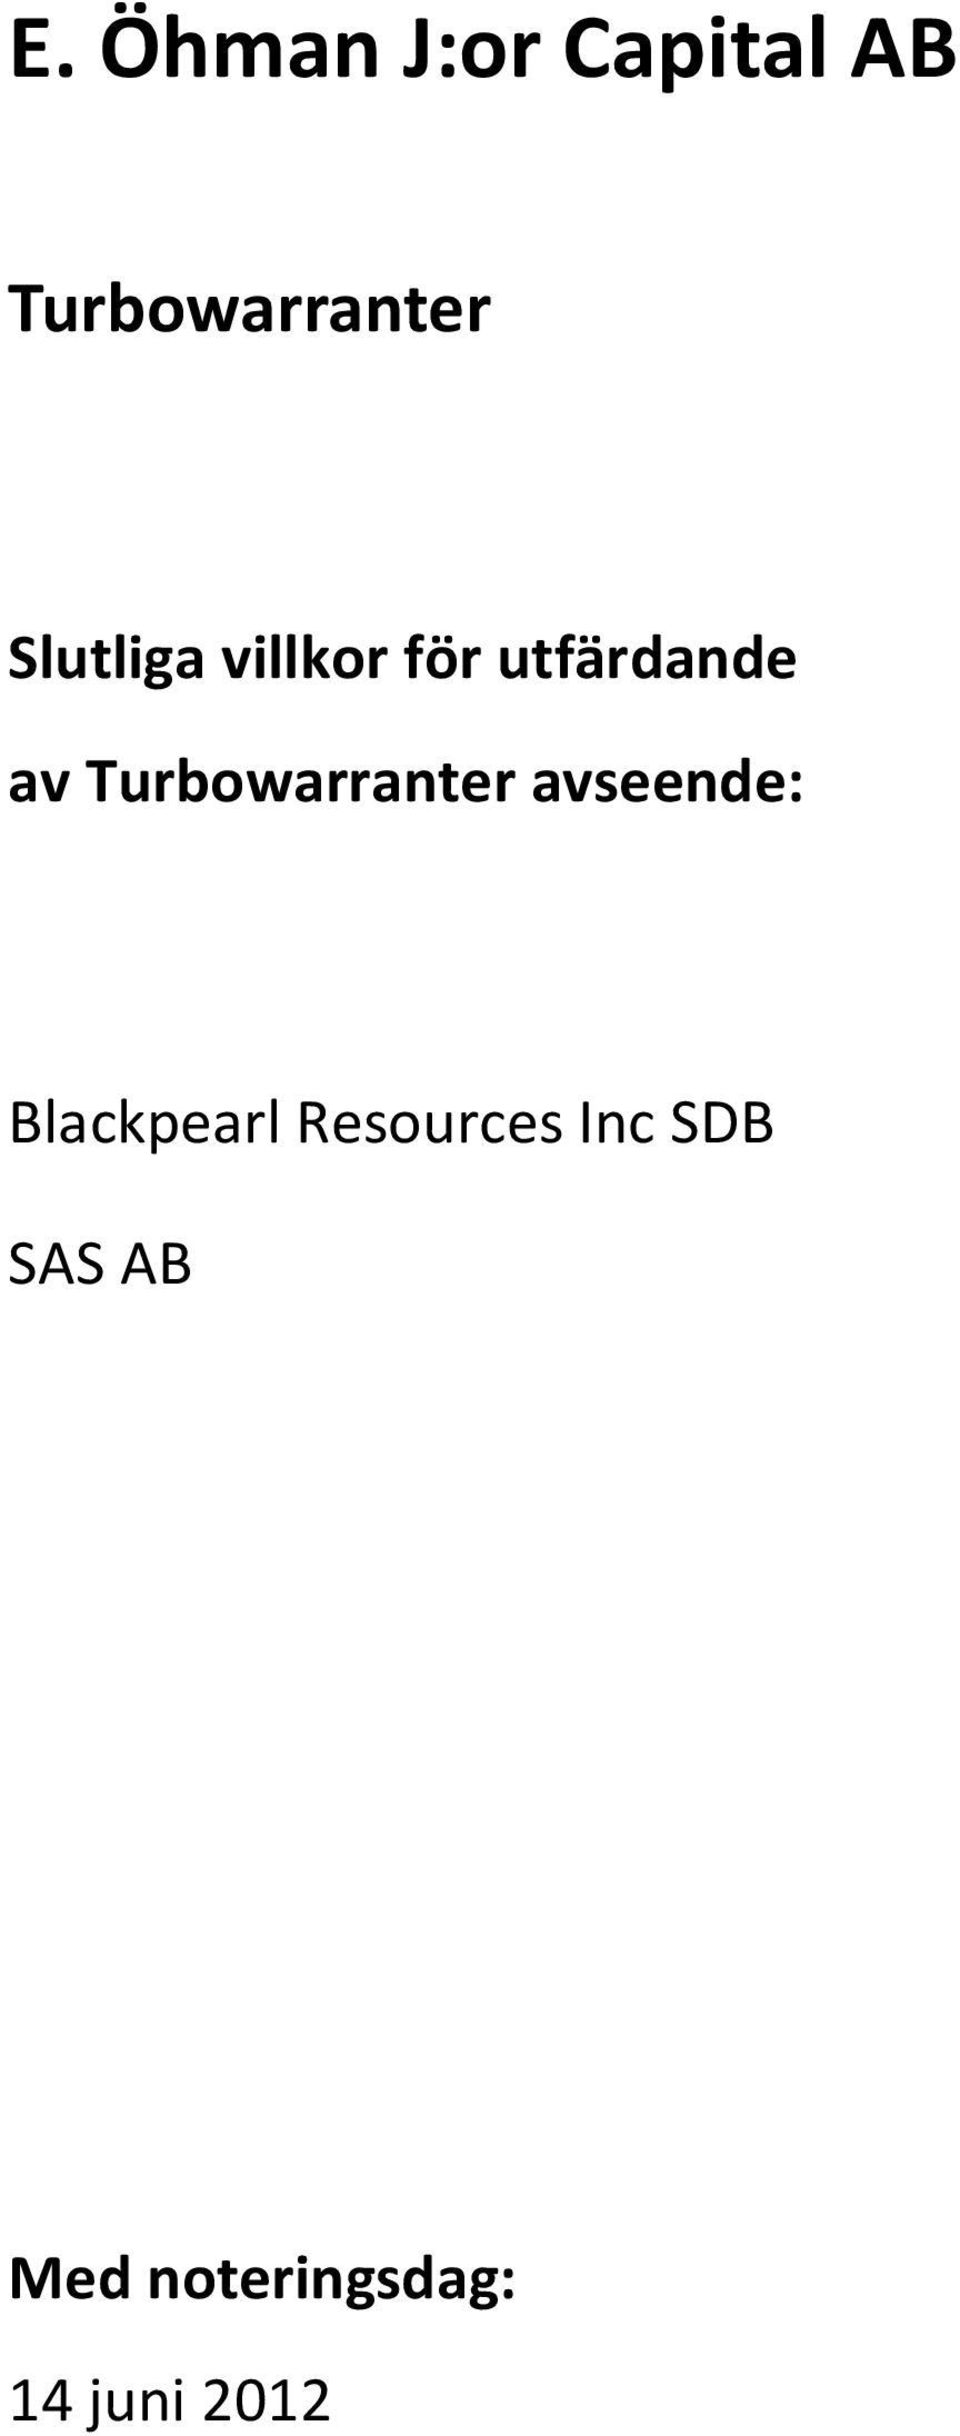 Turbowarranter avseende: Blackpearl